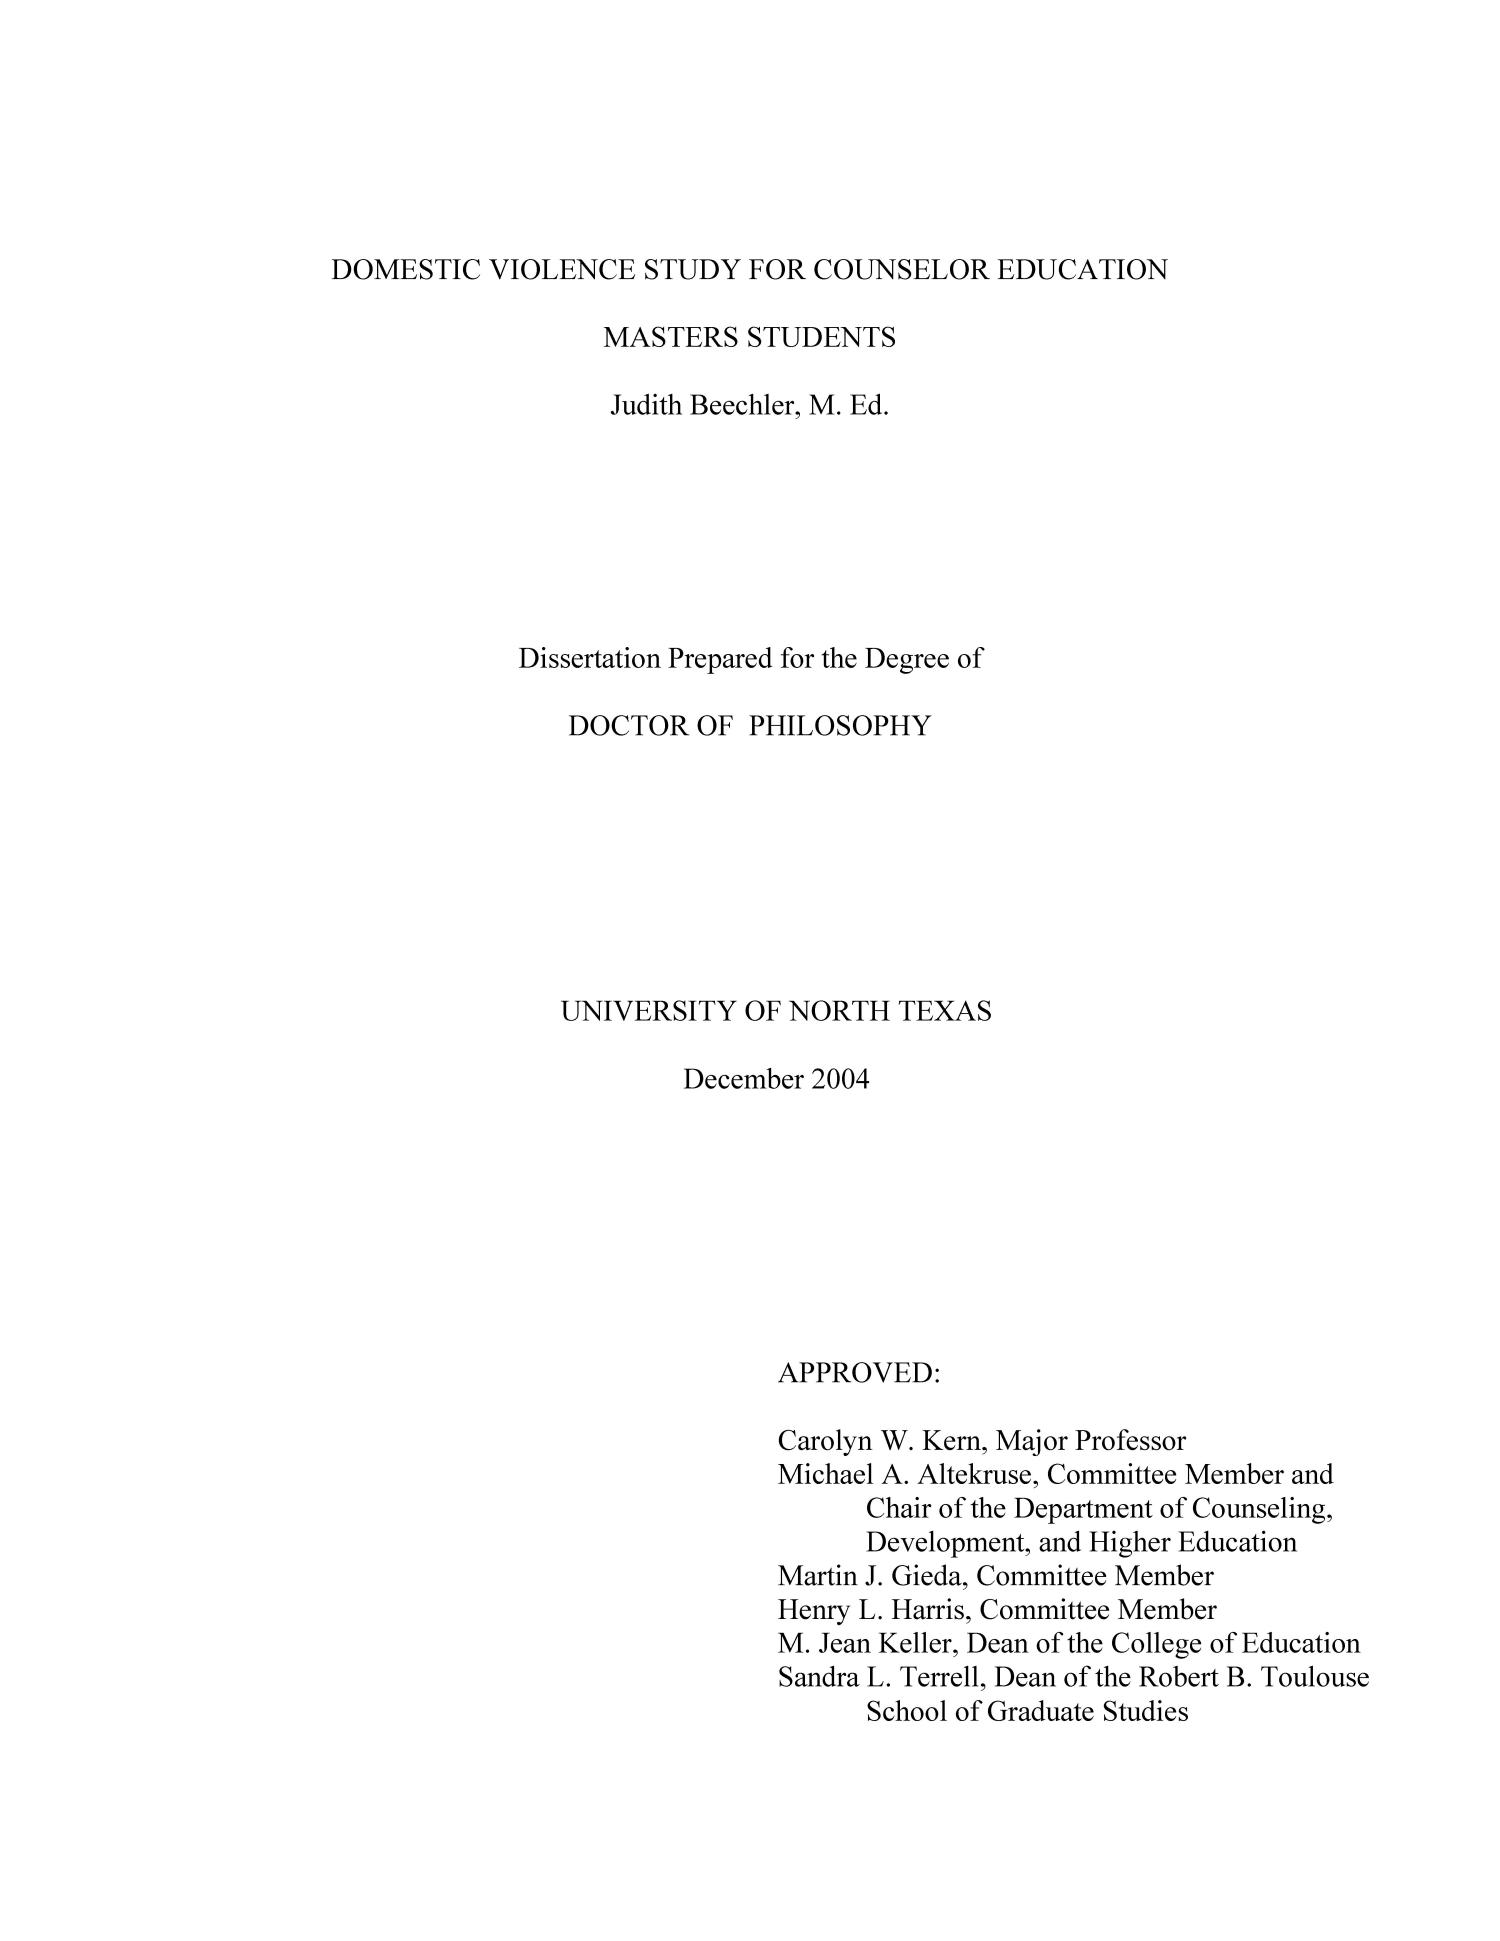 dissertation for masters